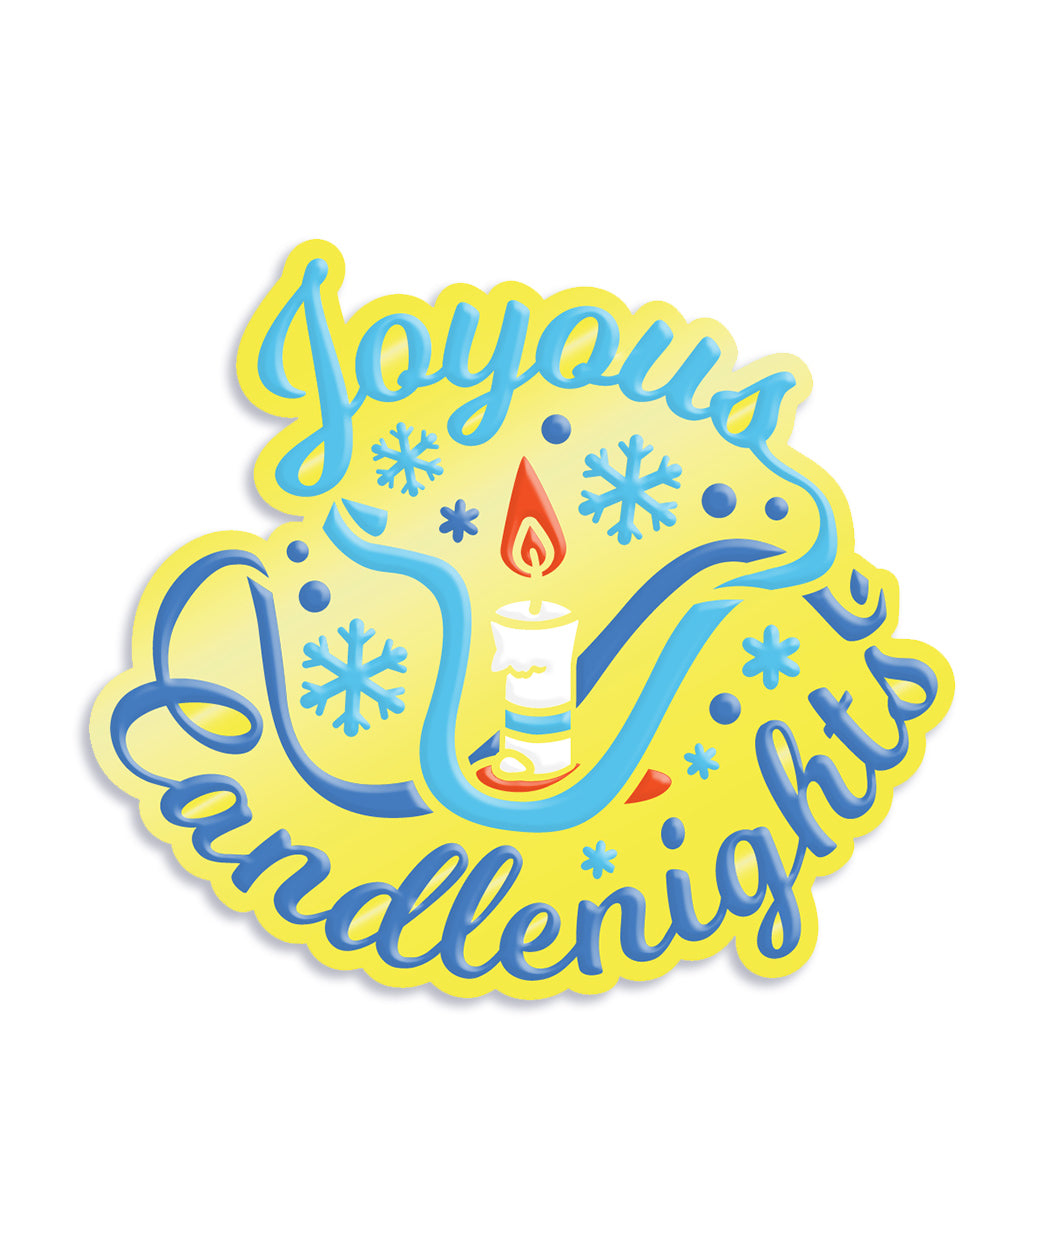 Pin Of The Month: Joyous Candlenight (November)